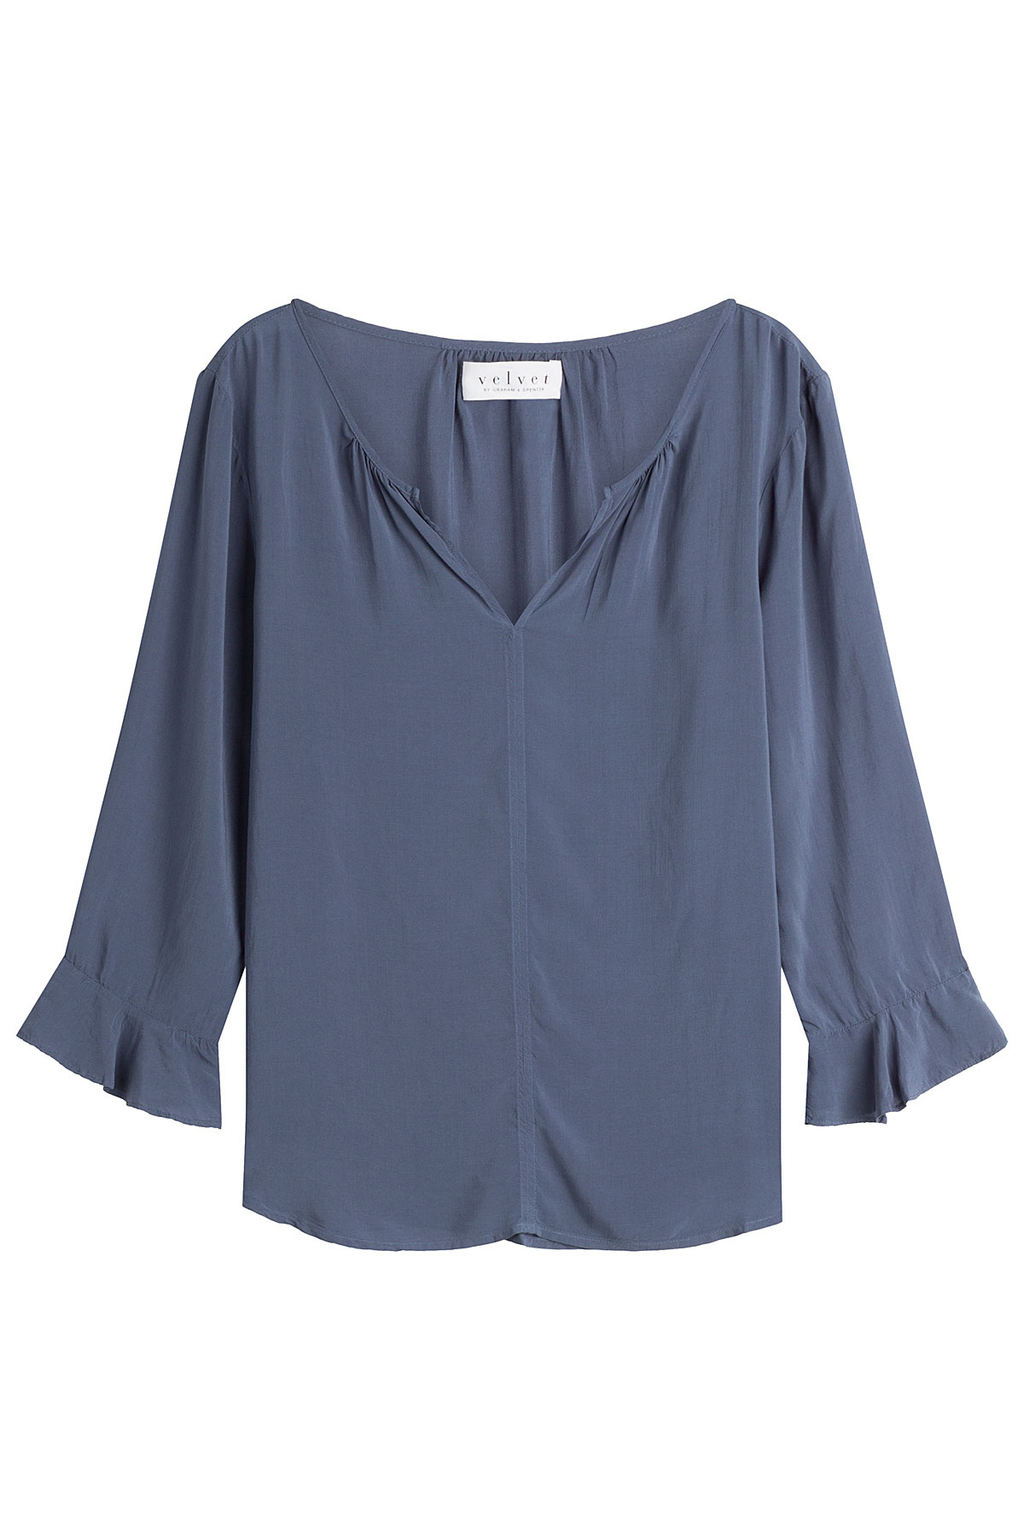 Fluid Blouse - neckline: v-neck; sleeve style: bell sleeve; pattern: plain; style: blouse; predominant colour: denim; occasions: casual; length: standard; fibres: viscose/rayon - 100%; fit: loose; sleeve length: 3/4 length; pattern type: fabric; texture group: jersey - stretchy/drapey; season: a/w 2016; wardrobe: highlight